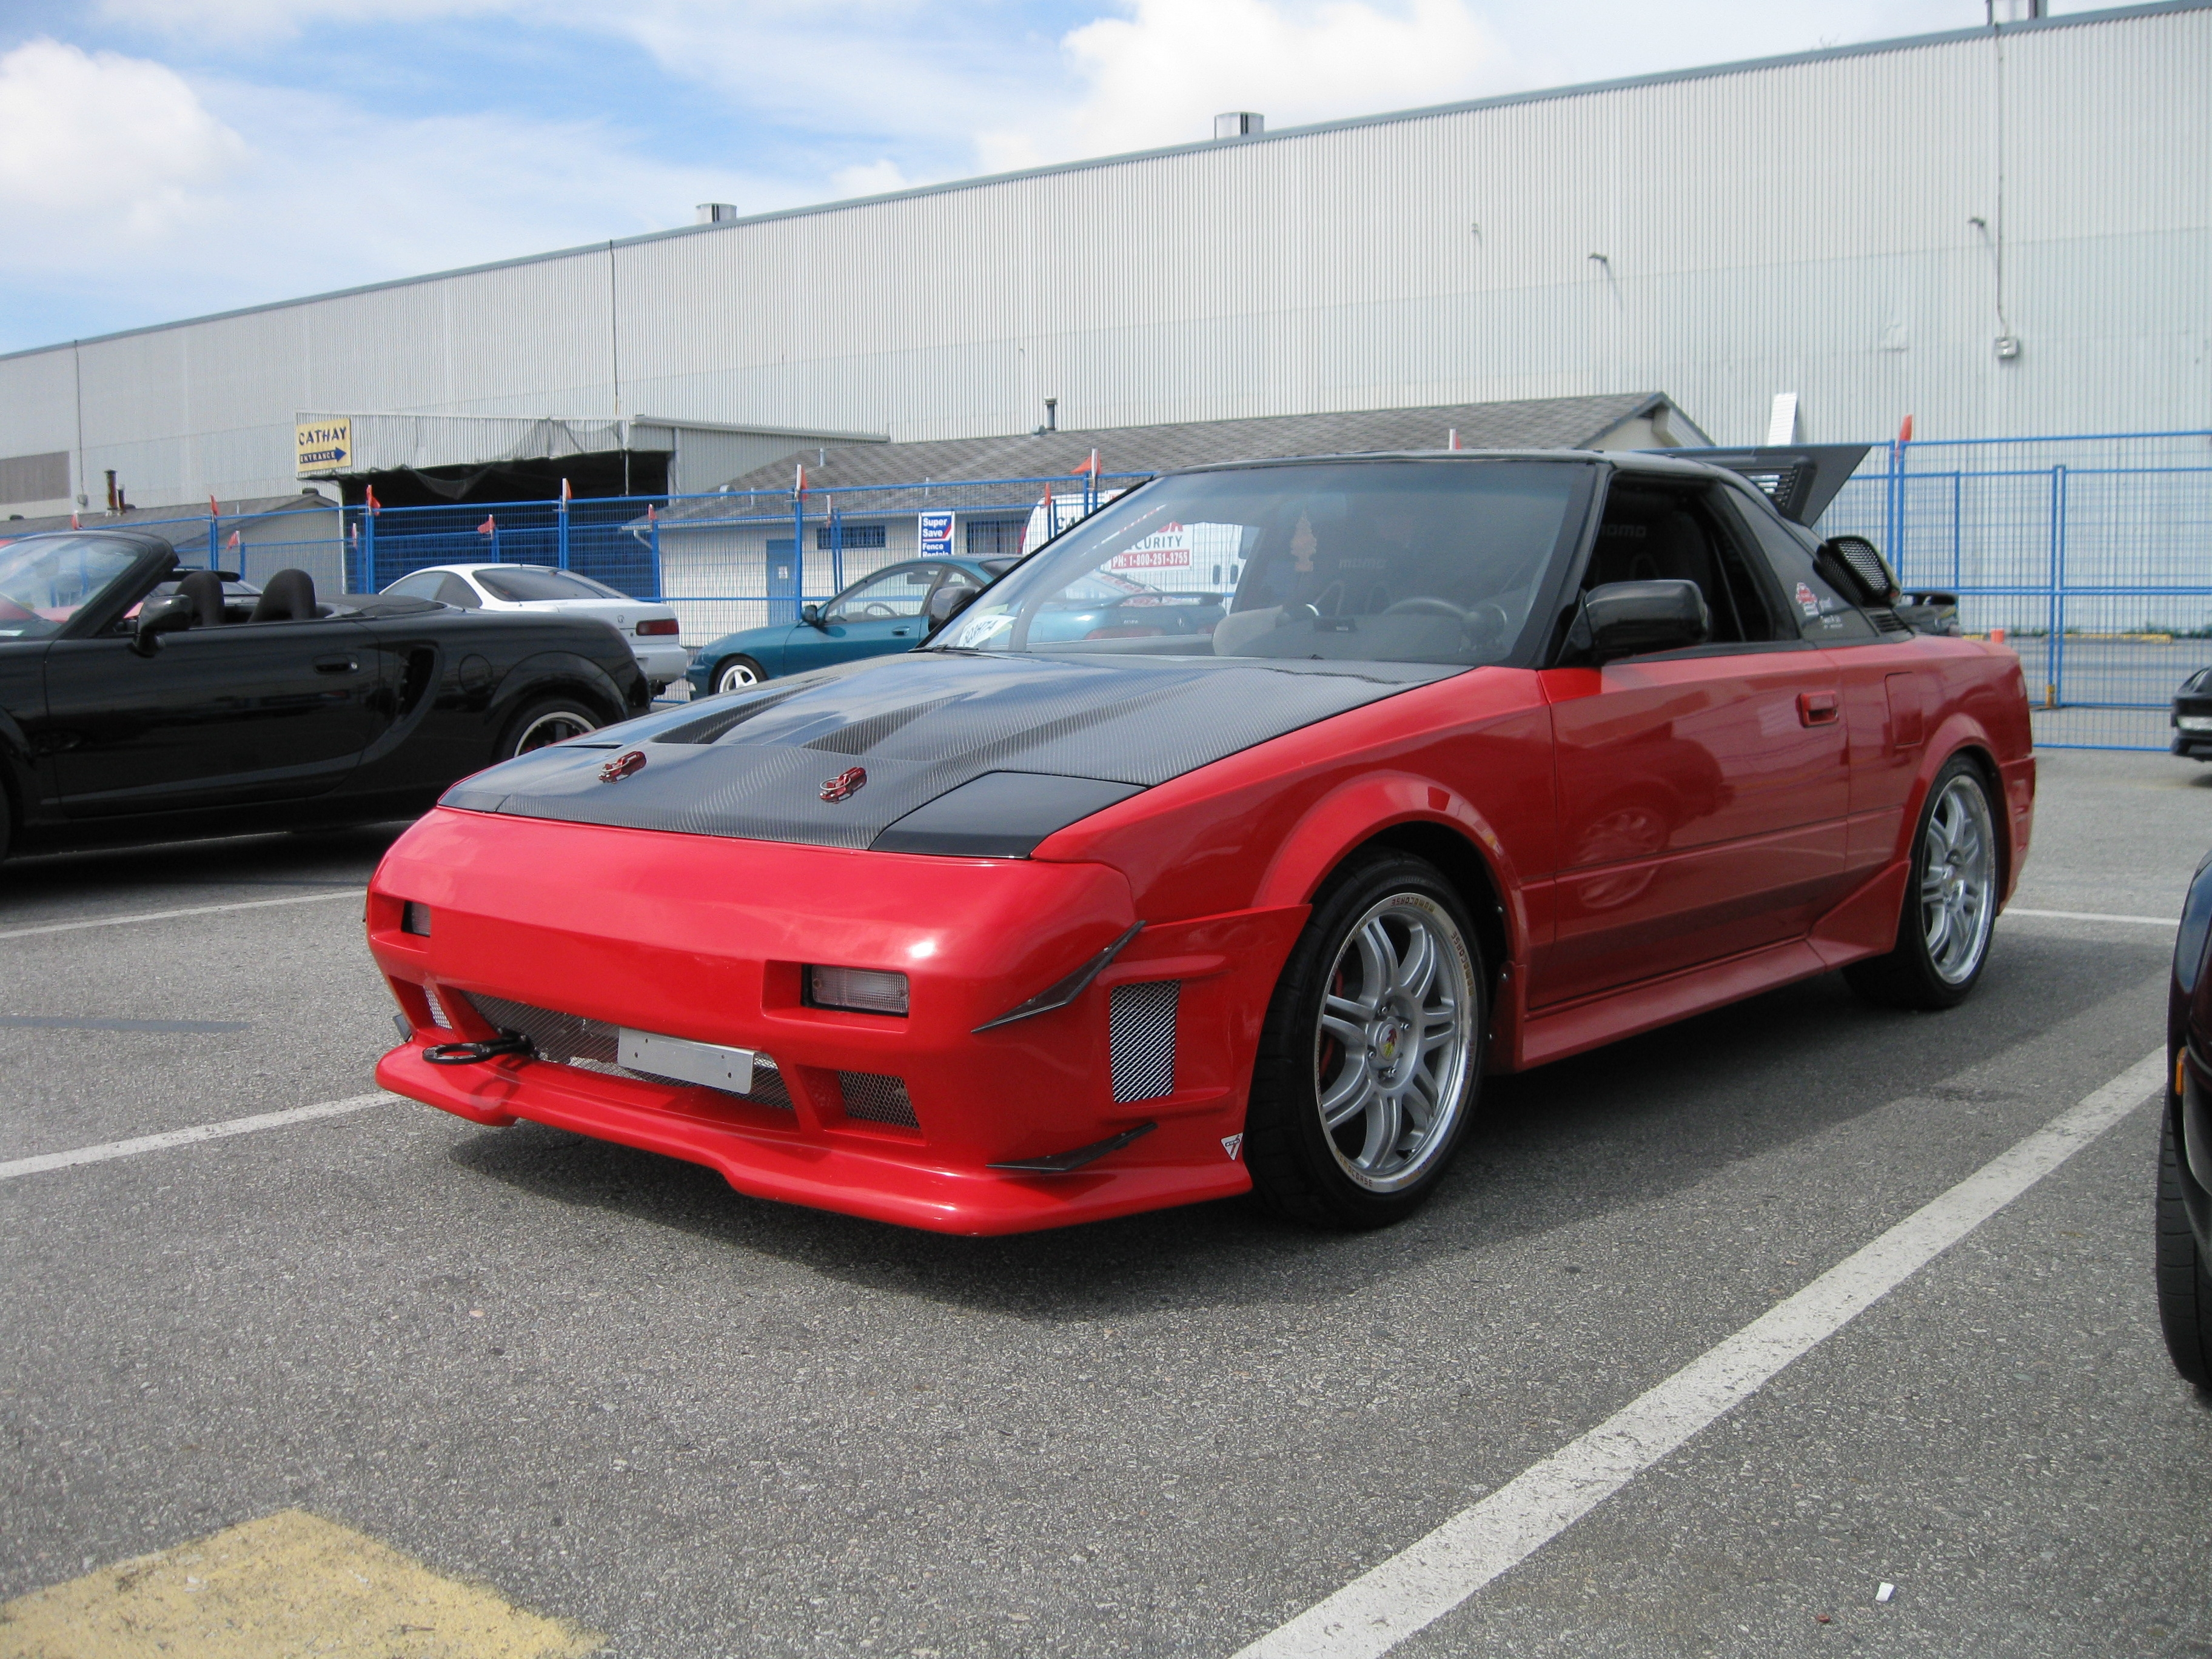 mr2_sc1988's 1988 Toyota MR2